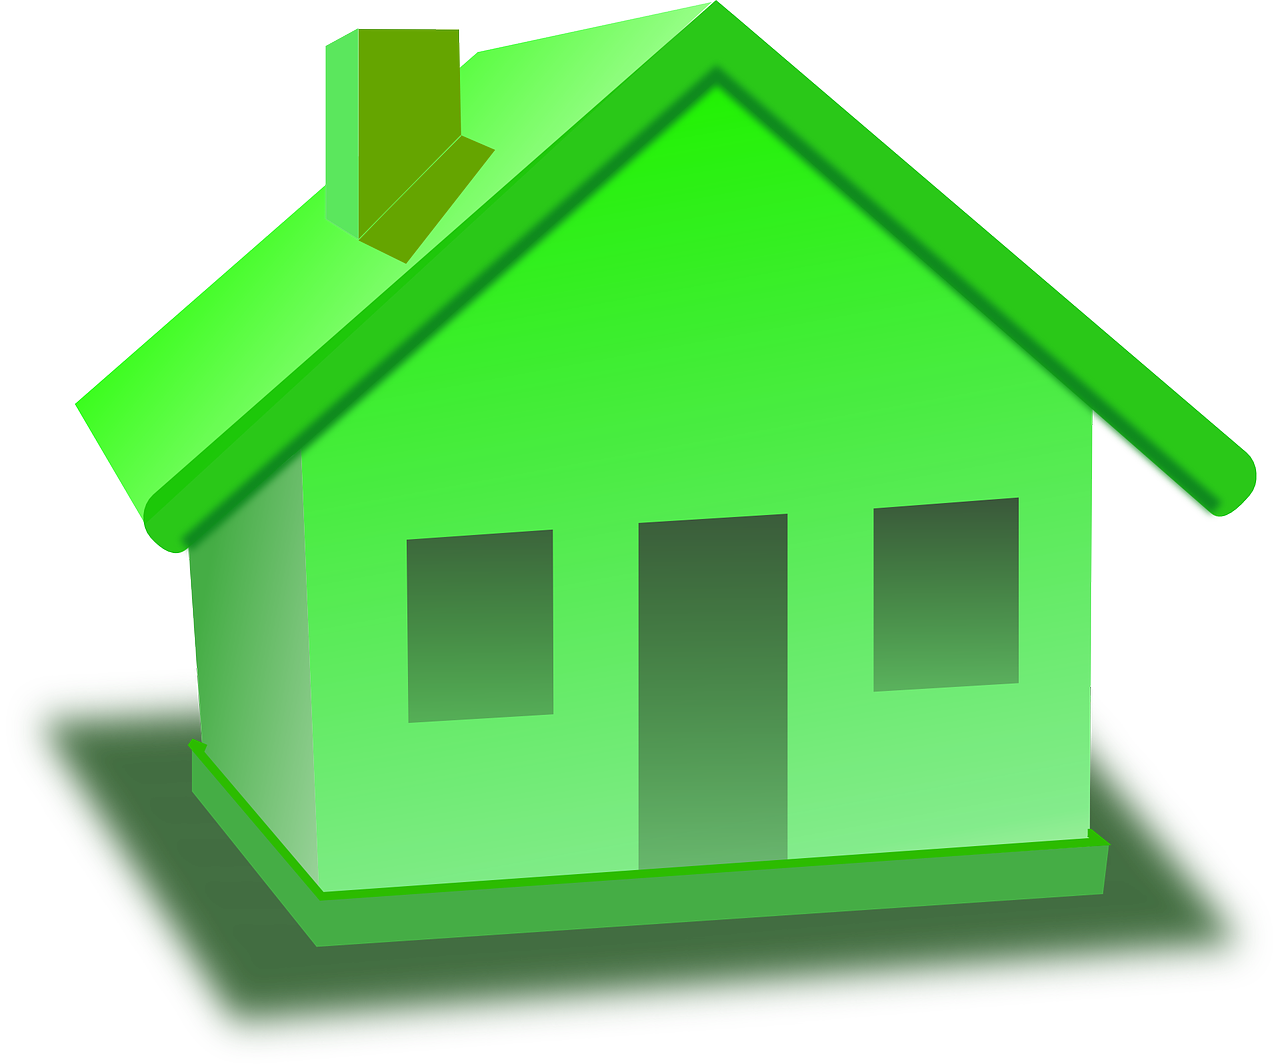 Sold our home on. Neighborhood clipart colored house